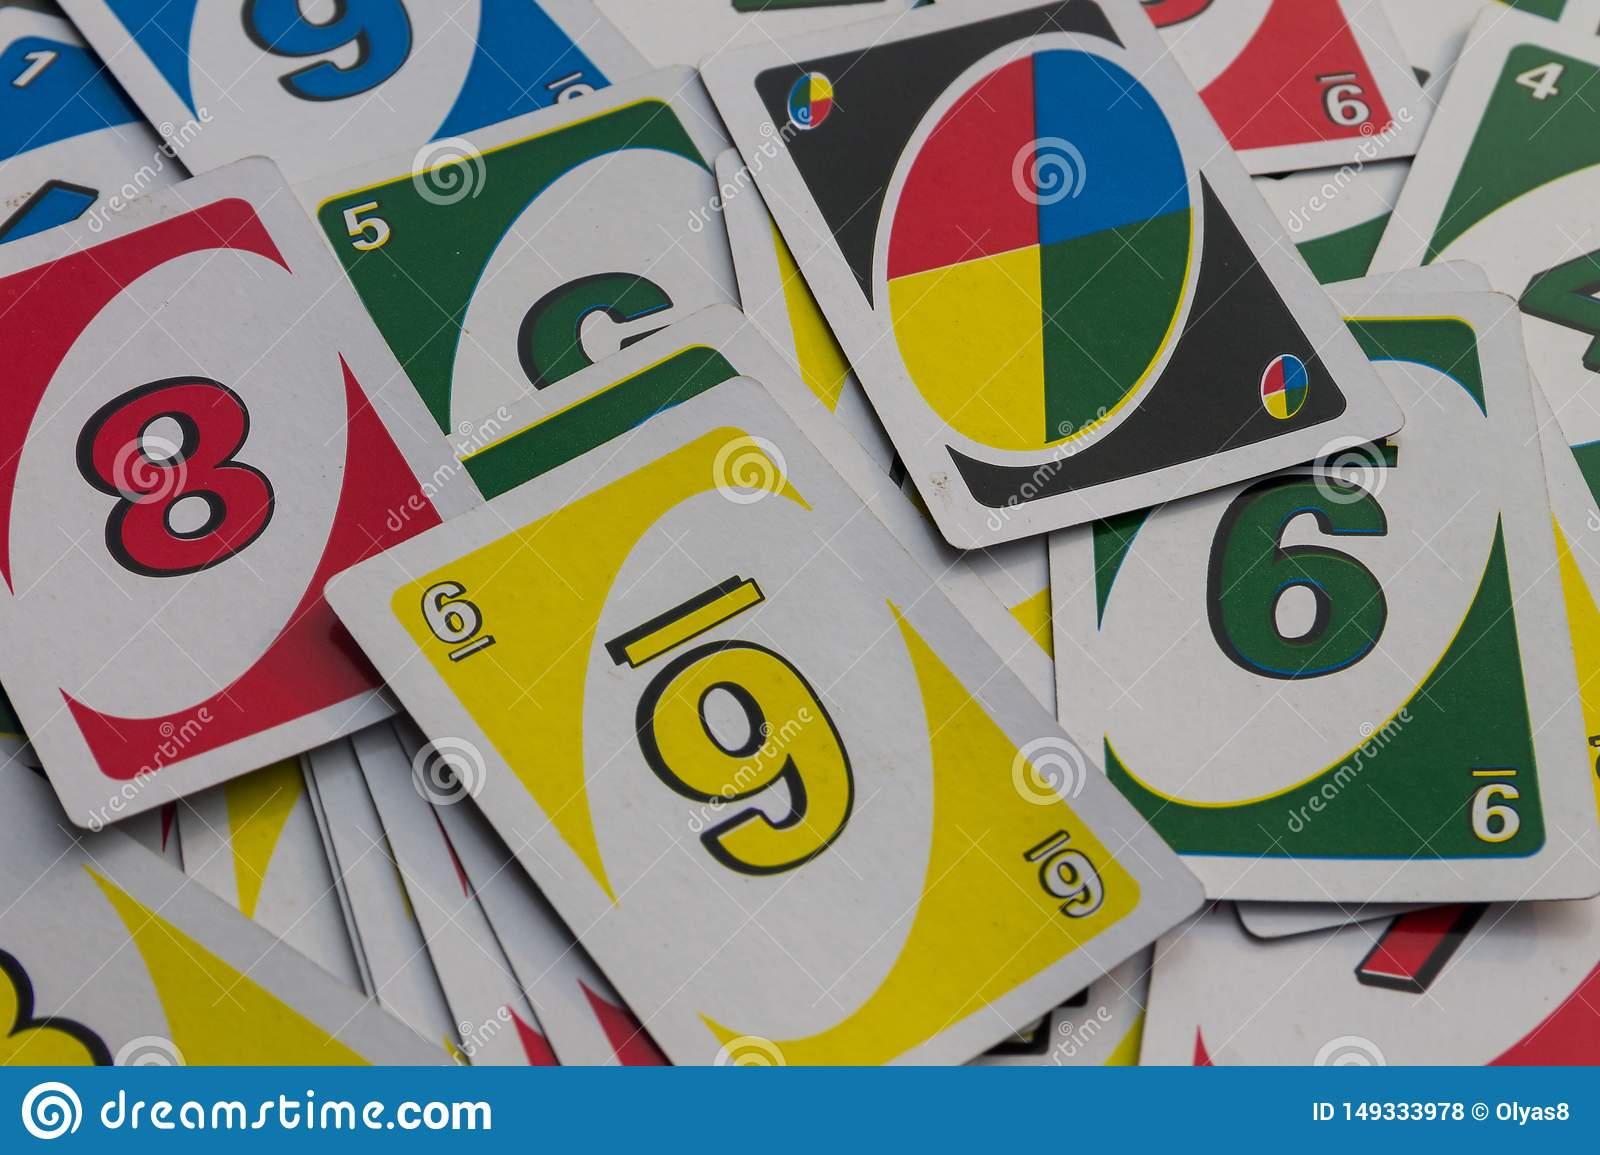 Uno game playing cards